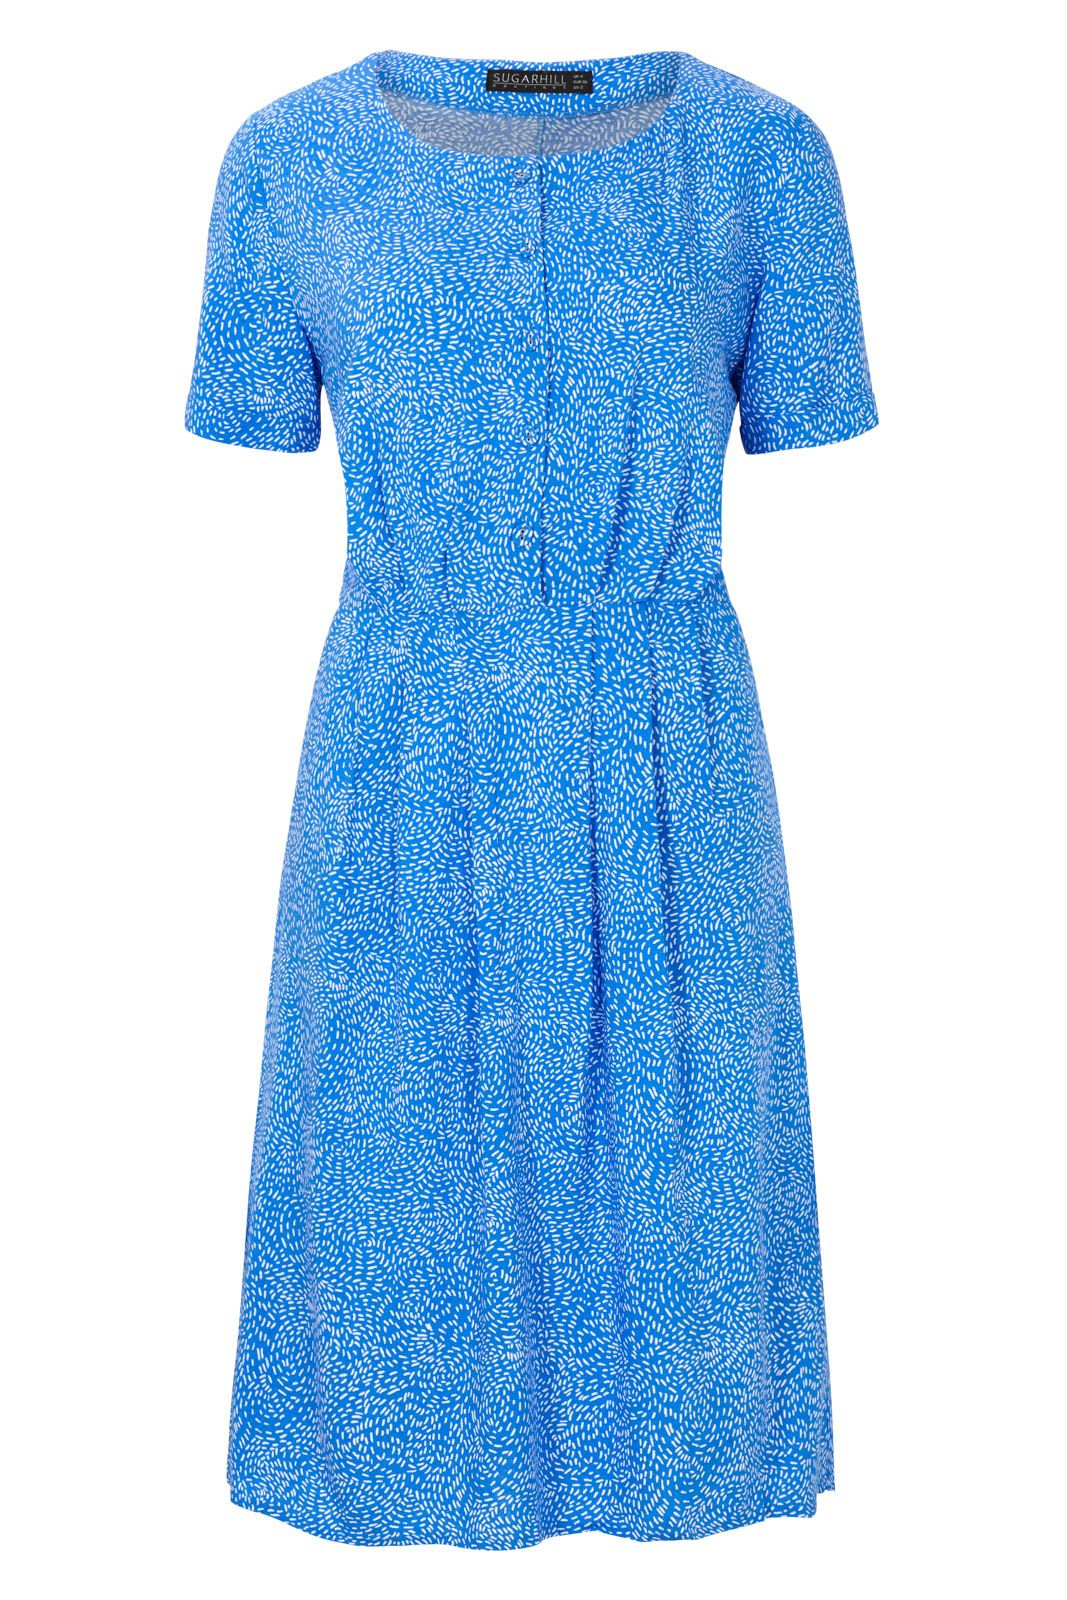 Sugarhill Boutique Litzy Swirling Dots Button Up Dress, Blue